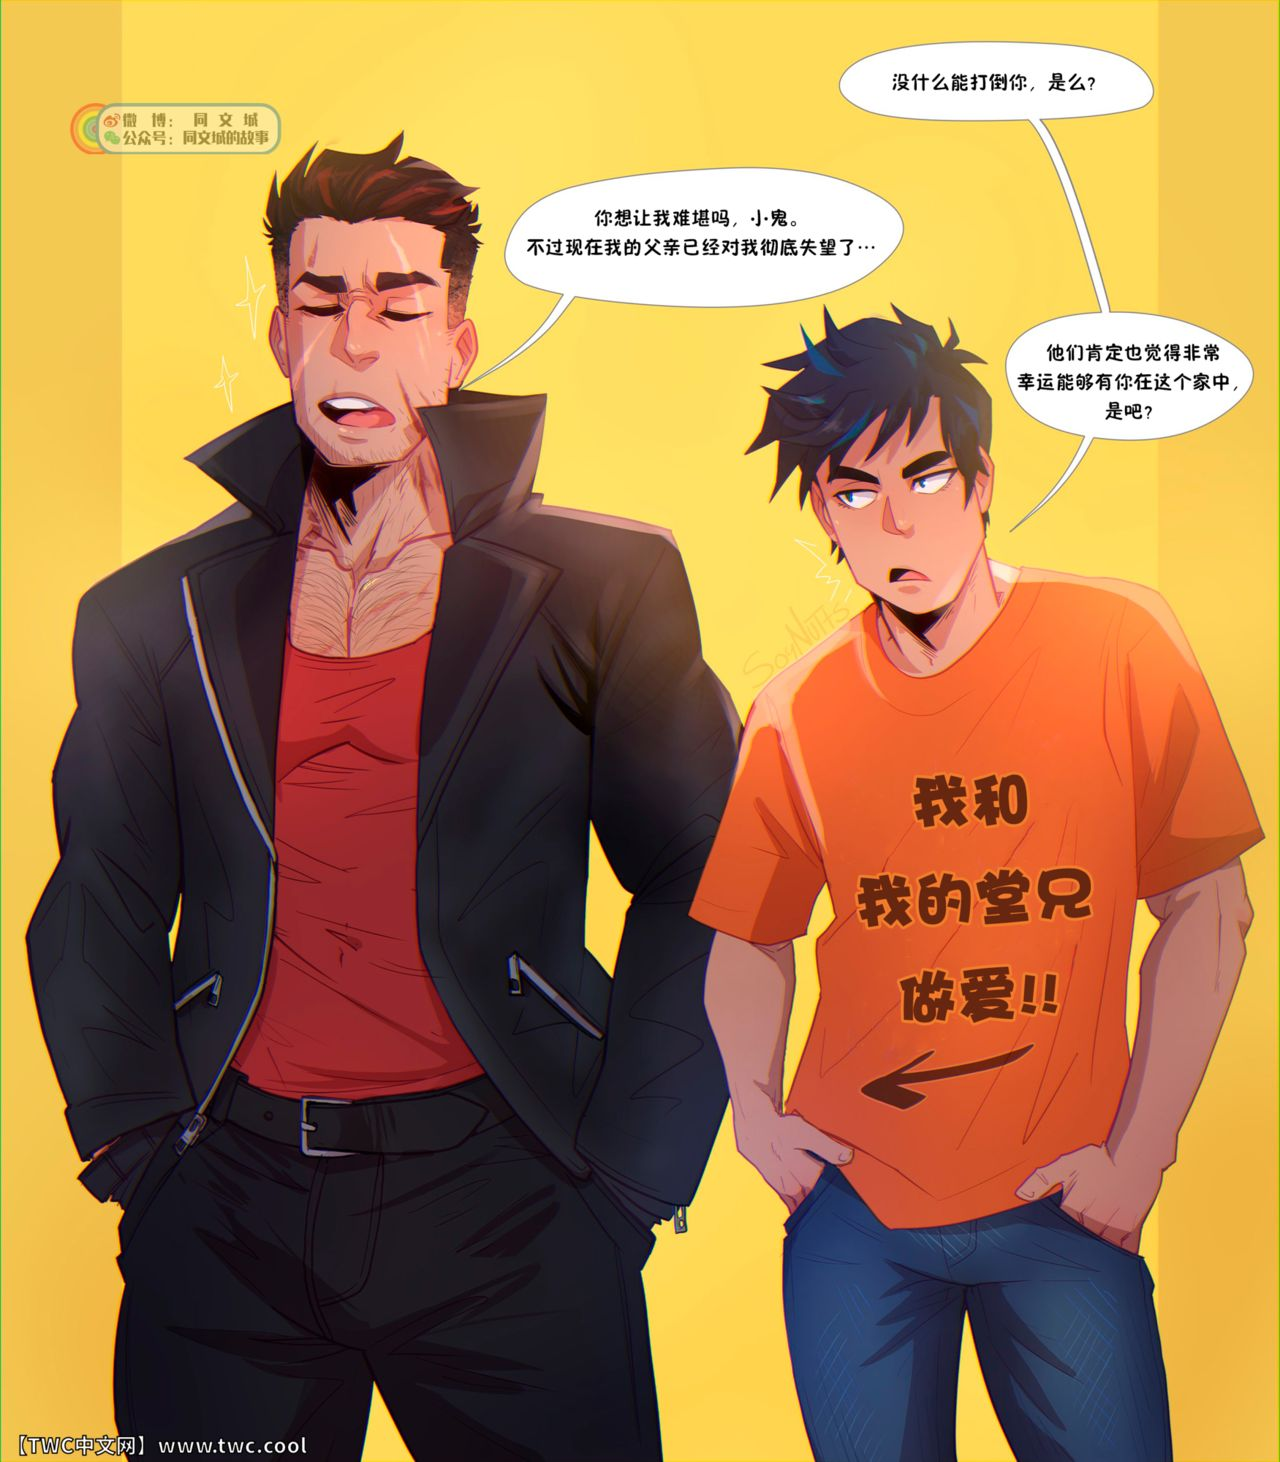 Percy and Ares 30ページ